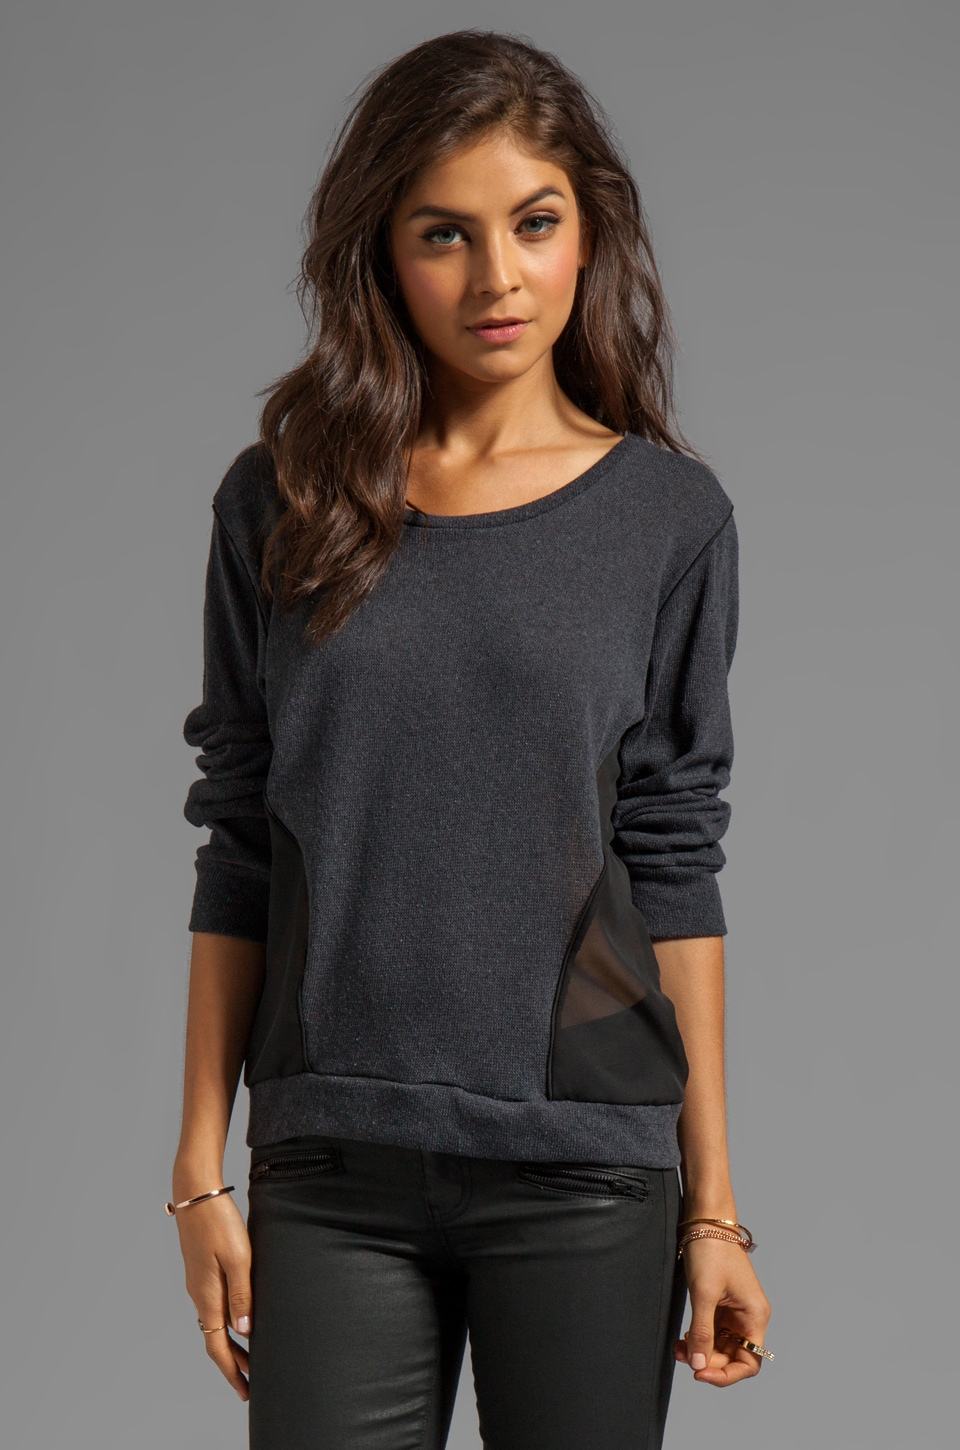 LNA Matteo Sweater in Charcoal